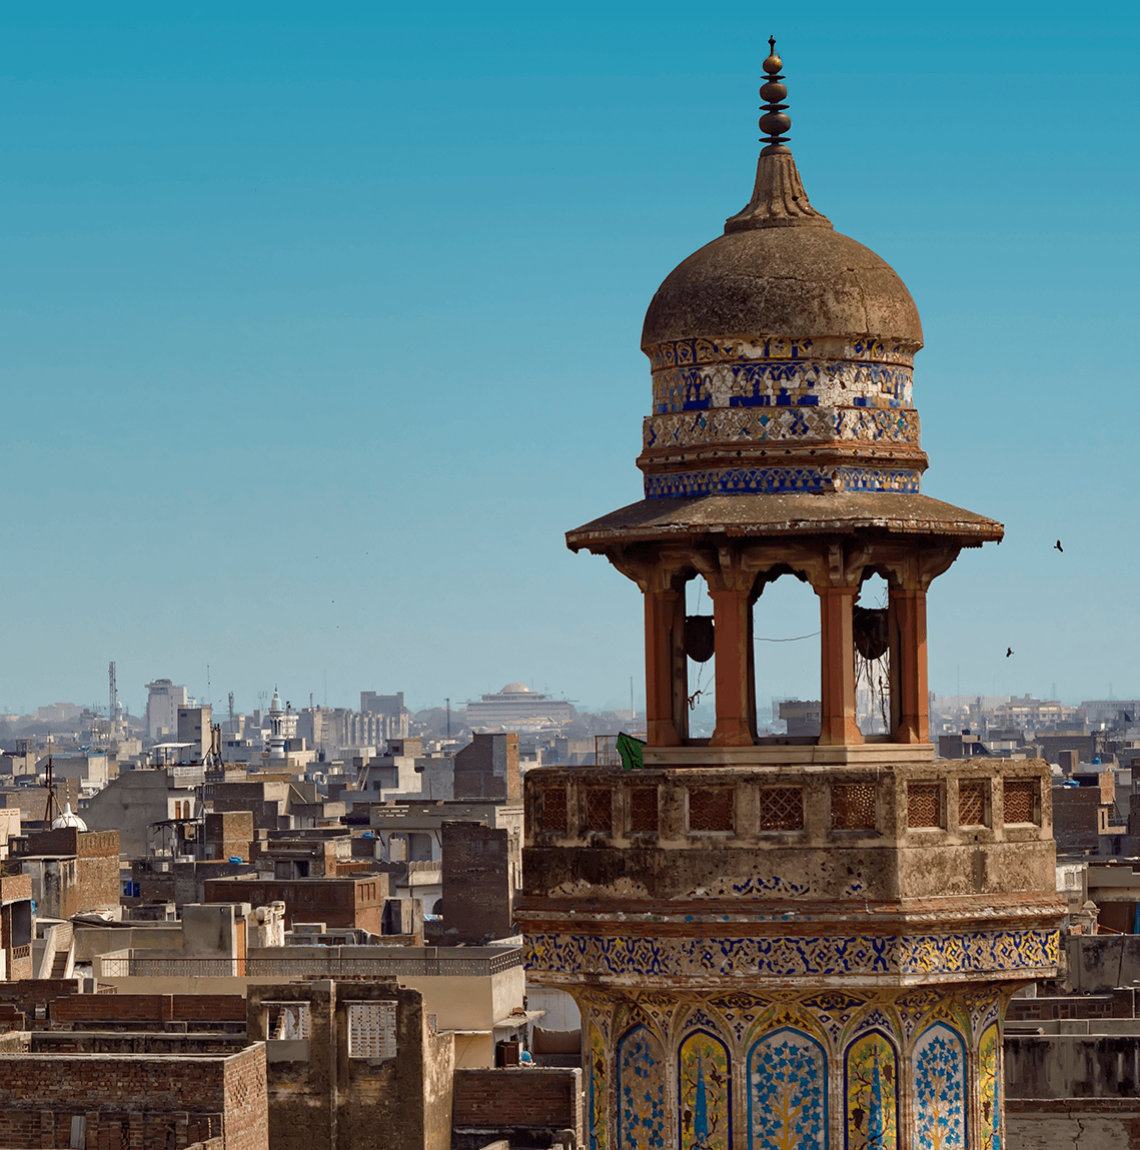 Spire of mosque against the blue sky, with tan-and-brown cityscape in background